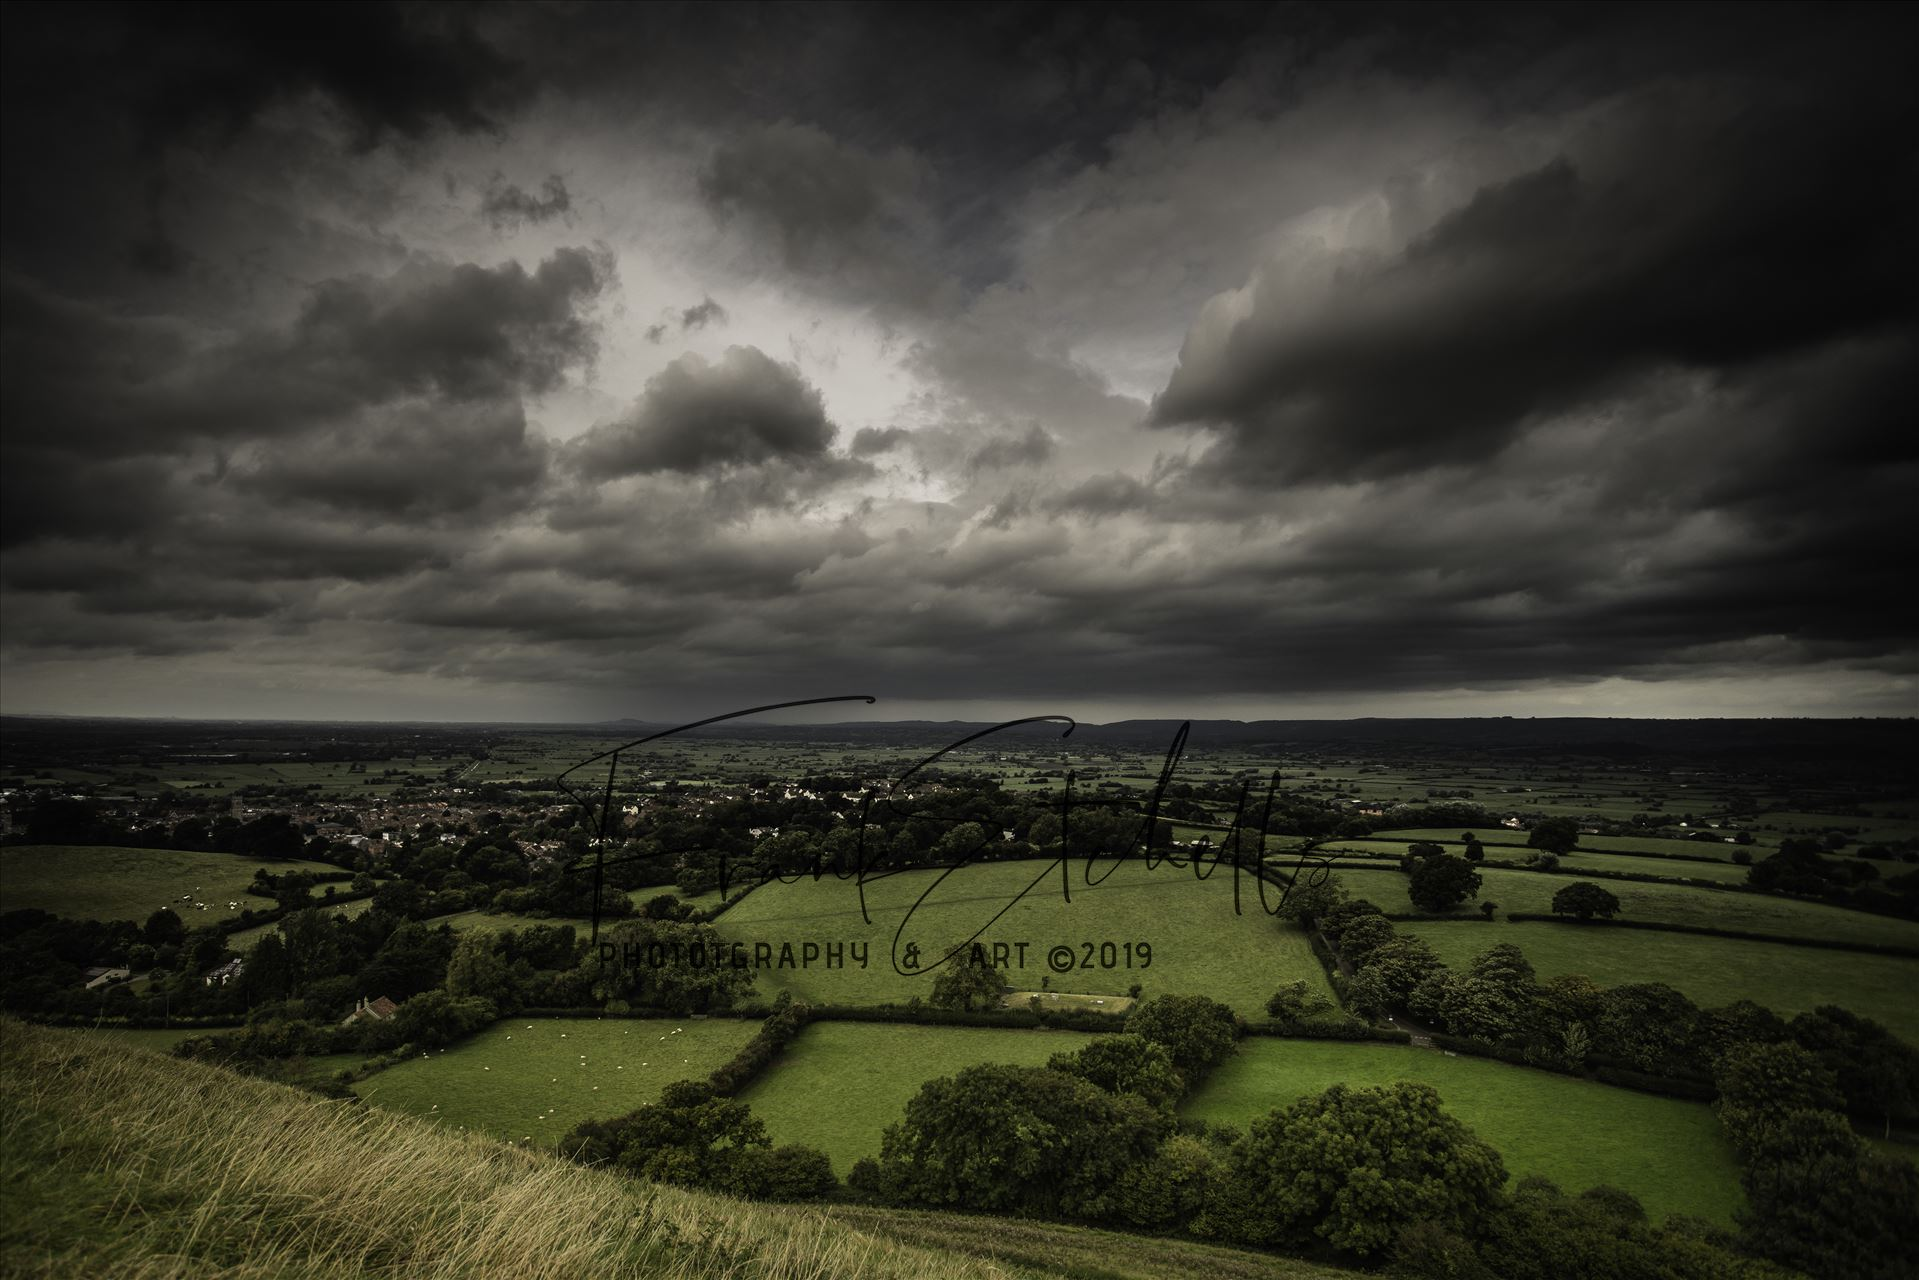 Approaching Storm Clouds - The wind blew strongly at the top and towards St. Michael's tower overlooking the surrounding lands bringing the clouds with it, they darkened and revealed approaching rain in the far distance... yet the sun broke briefly behind me to cast light below by Frank Etchells Photography